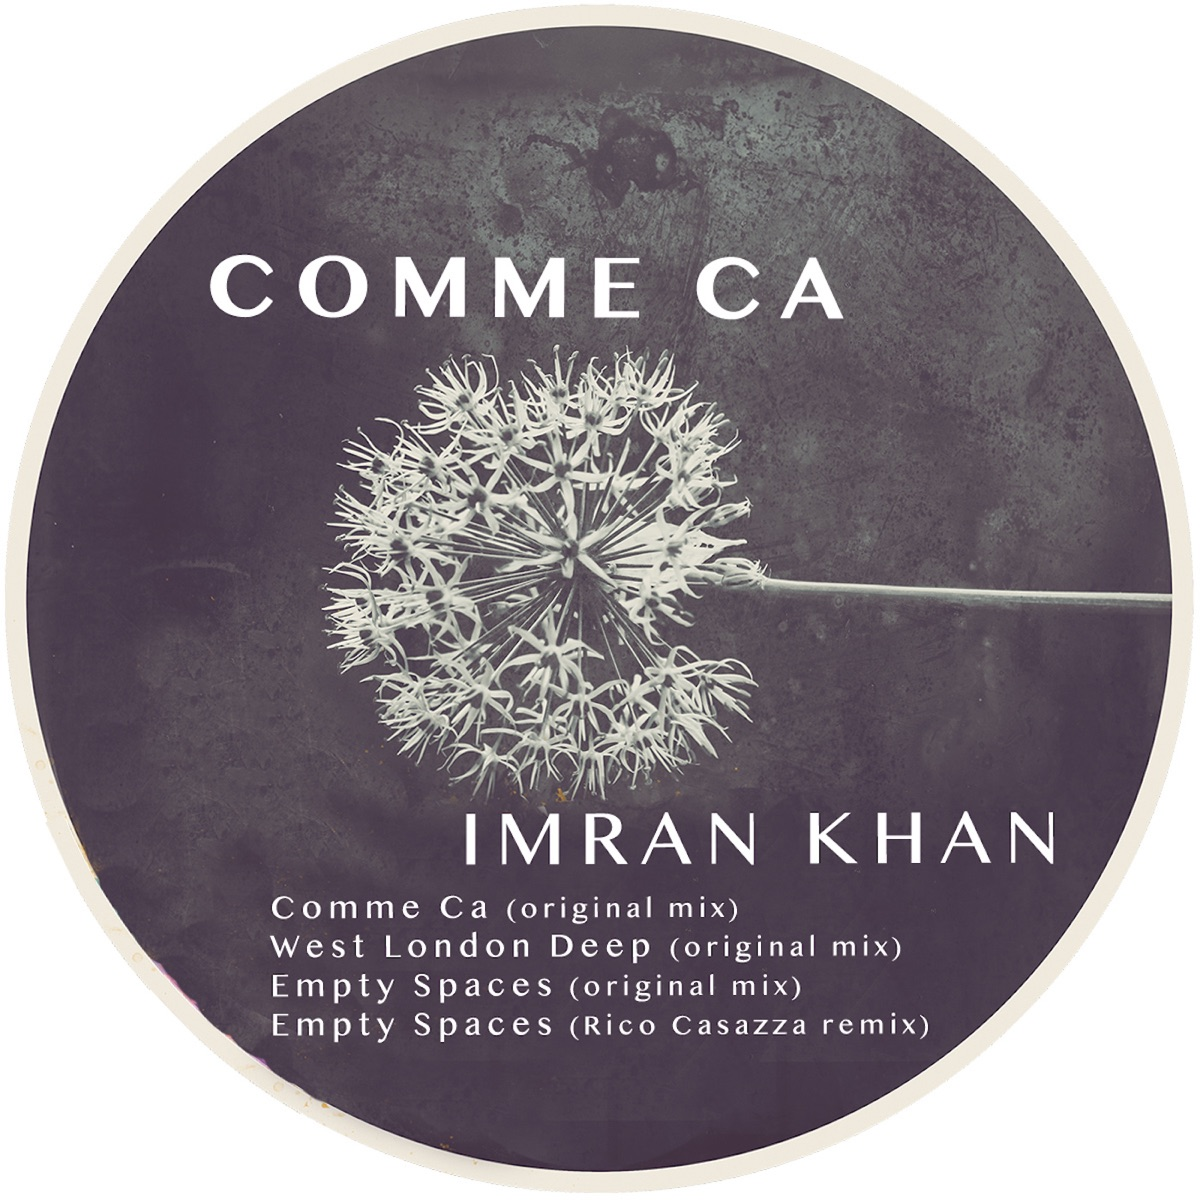 Comme Ca - EP Album Cover by Imran Khan